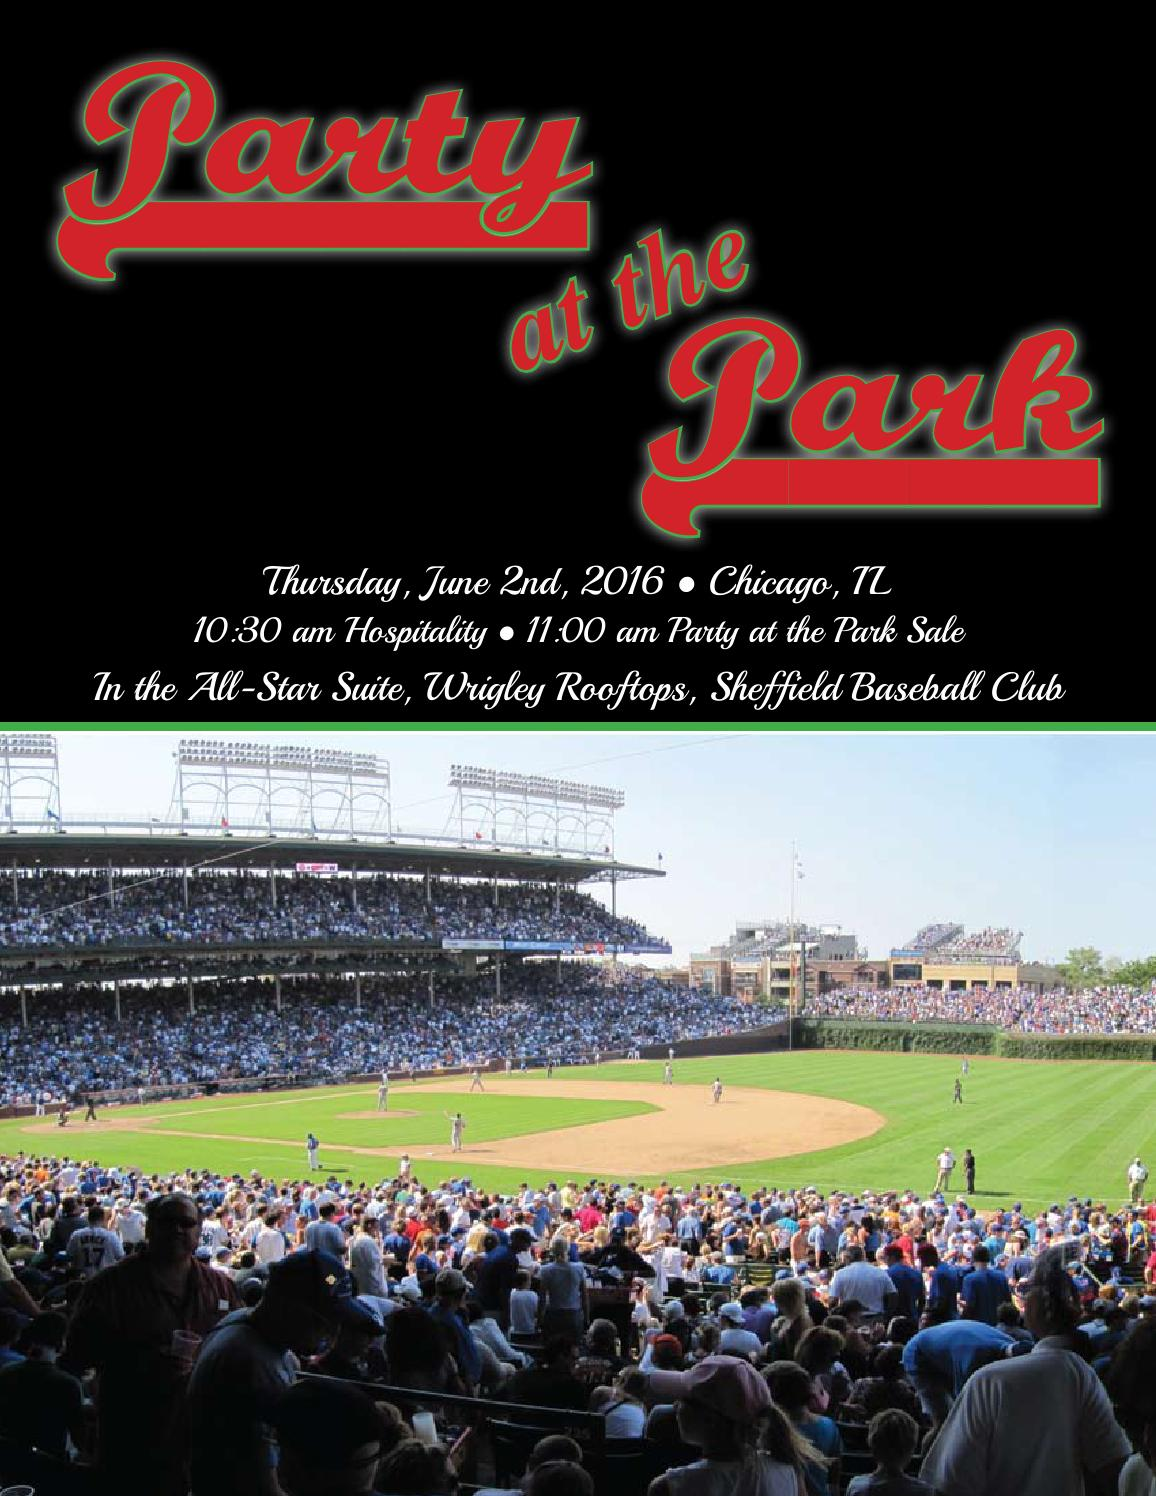 party at the park holstein sale by jennifer larrabee issuu